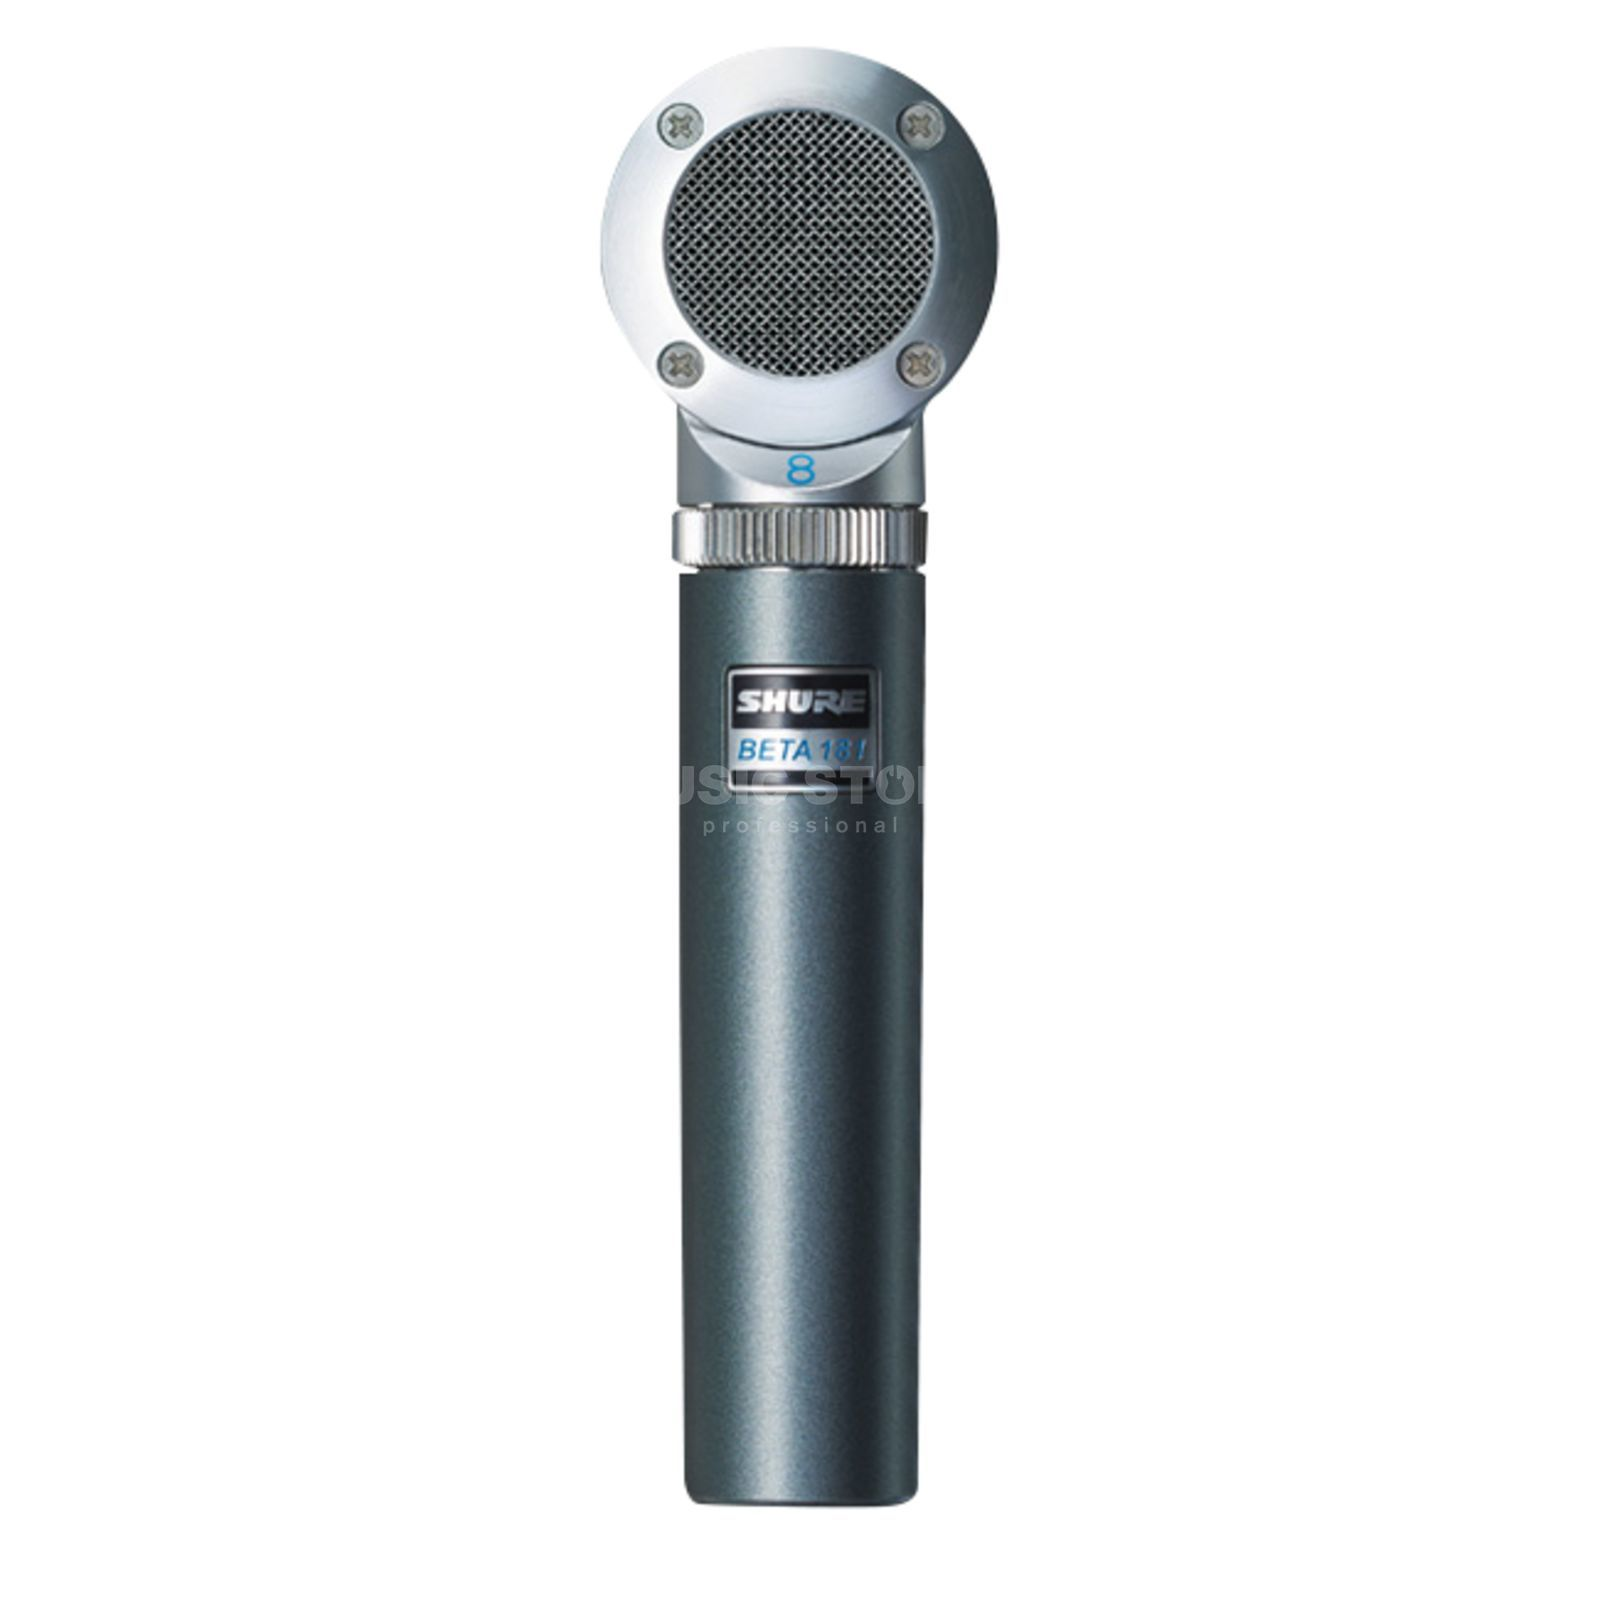 Shure Beta 181-BI small-membrane Microphone Product Image